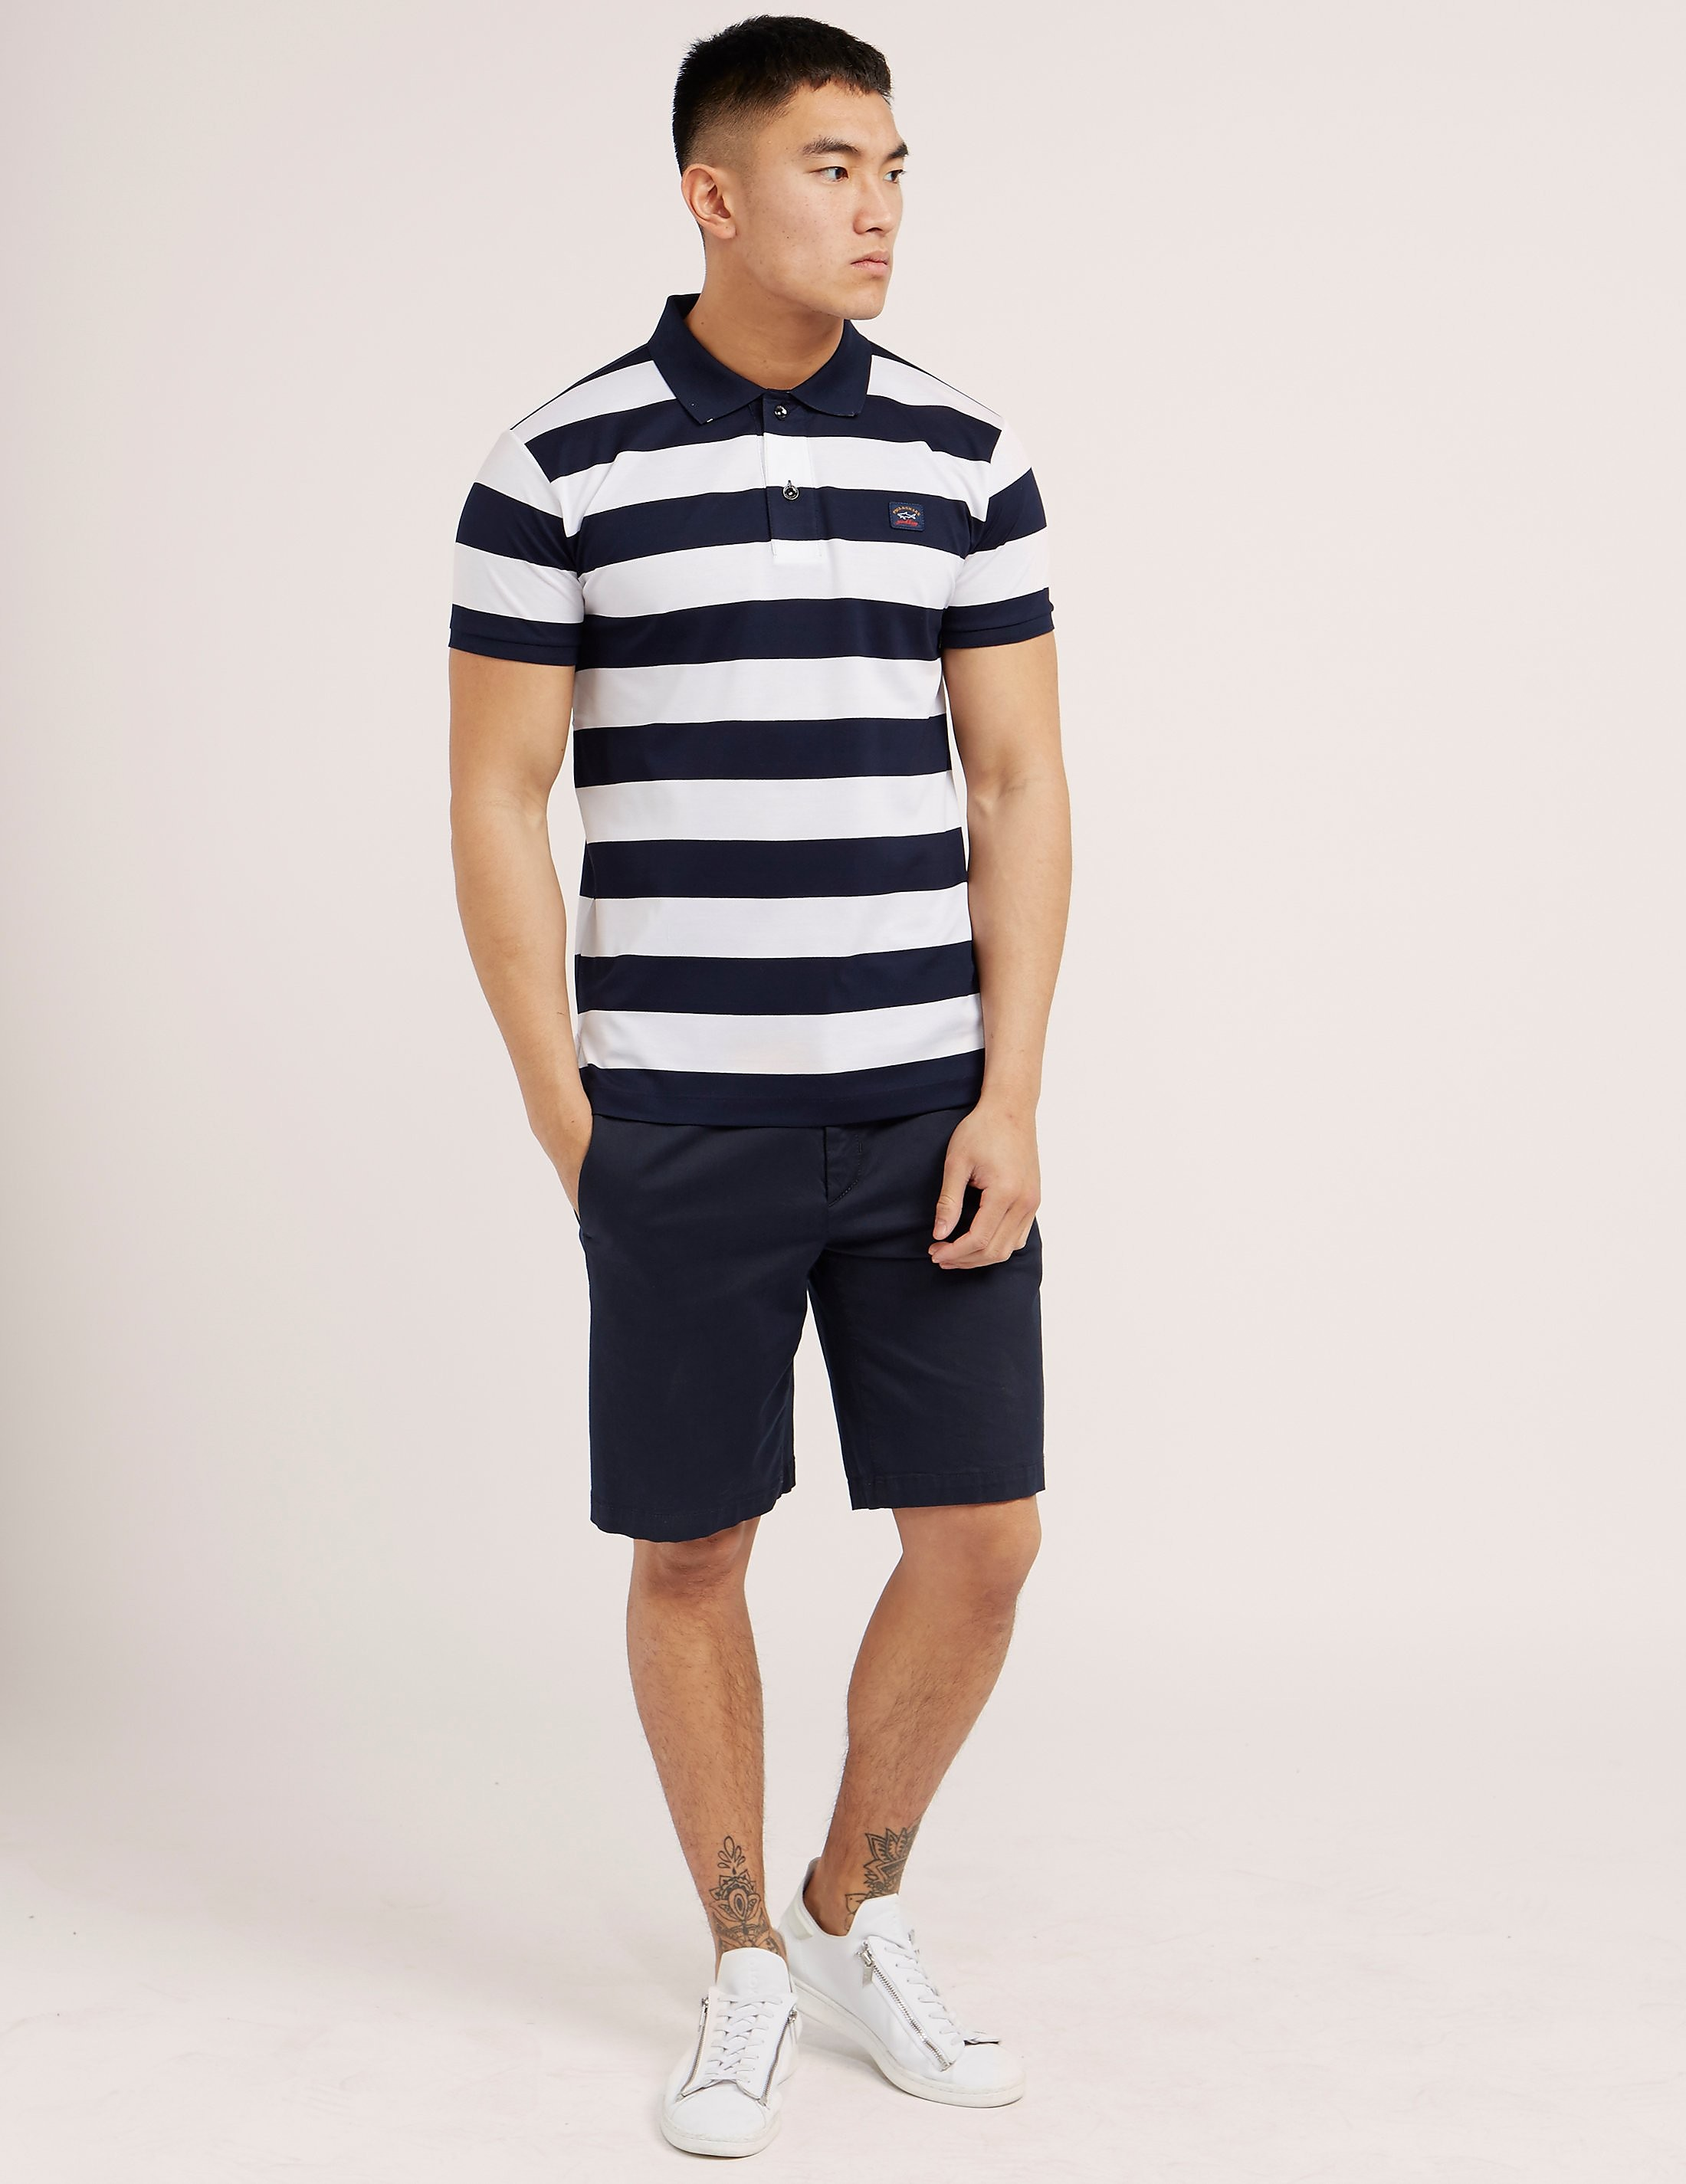 Paul and Shark Black Stripe Short Sleeve Polo Shirt